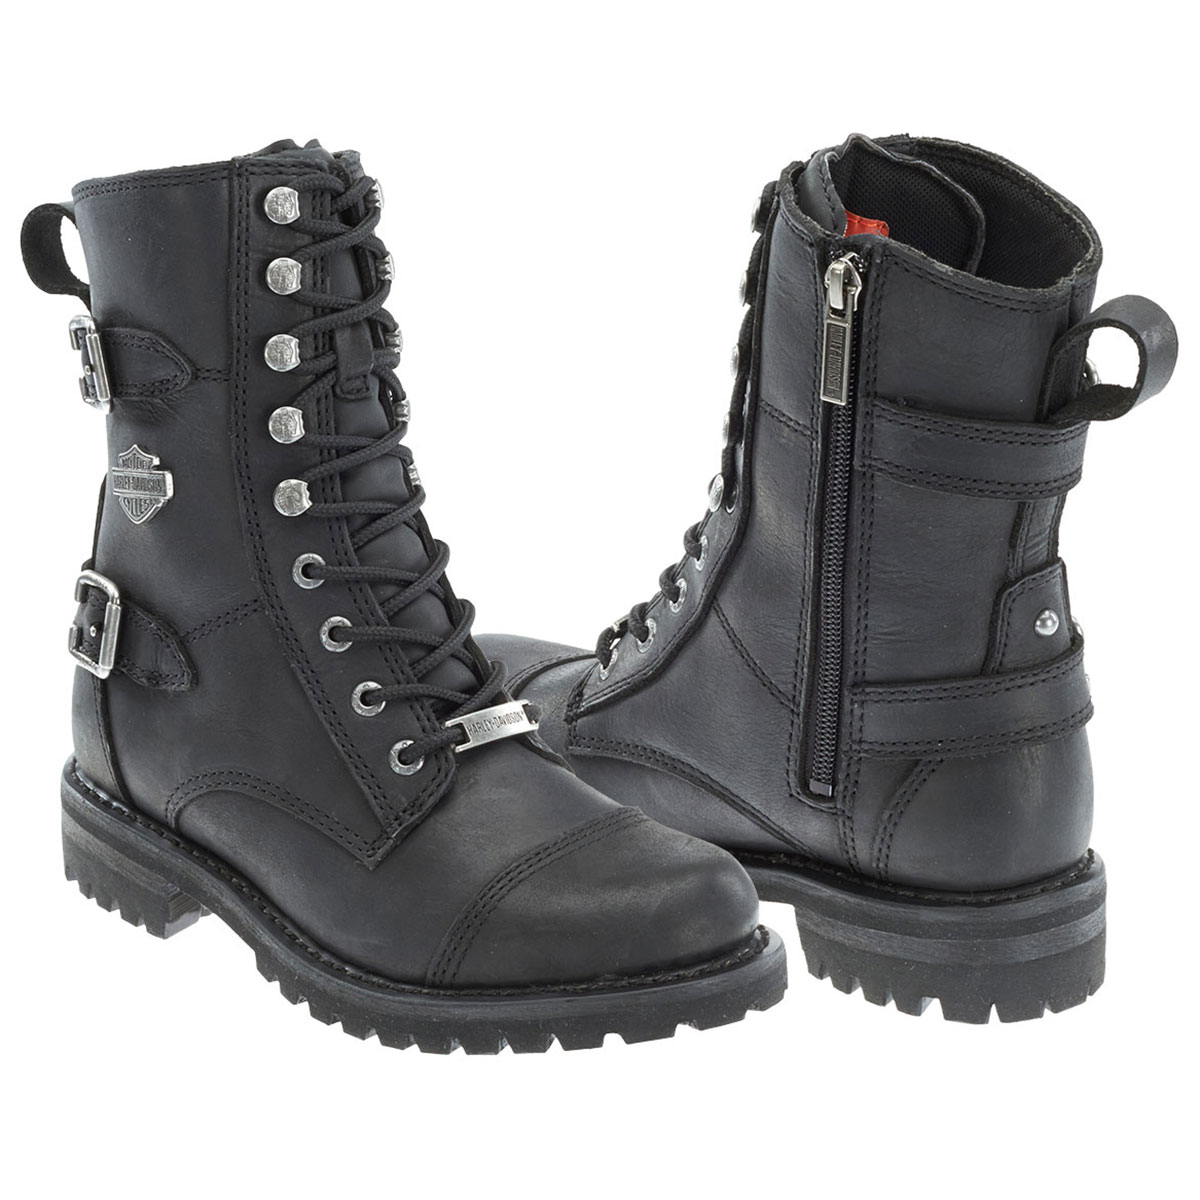 HarleyDavidson Womens Balsa Black Leather Mid Cut Boot Hover to zoom